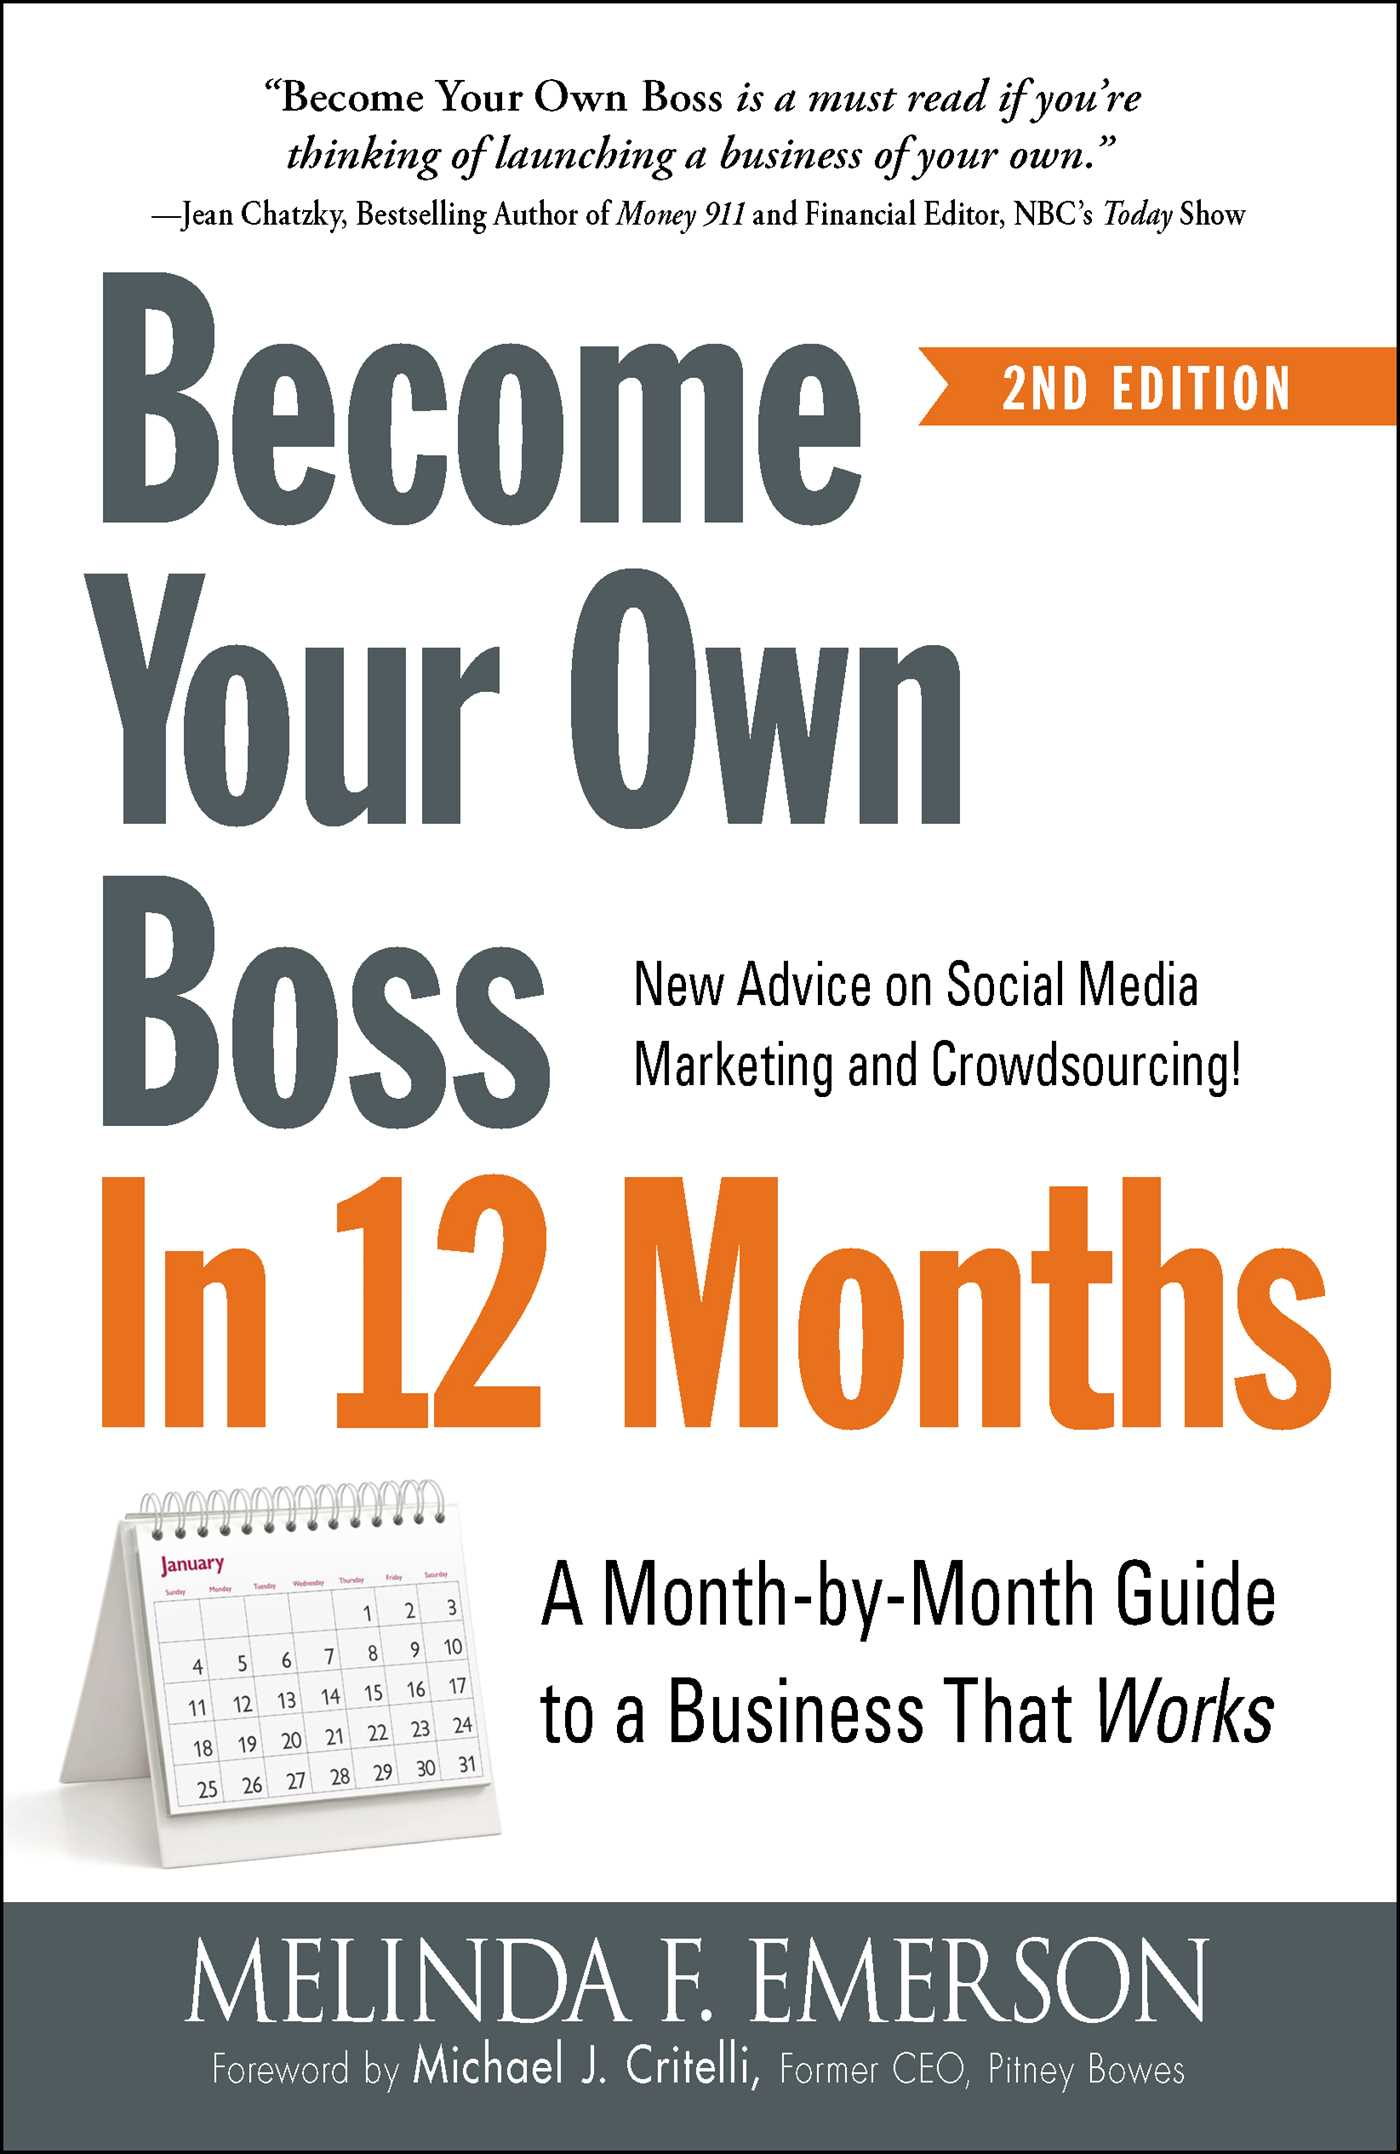 Book Cover Image (jpg): Become Your Own Boss in 12 Months